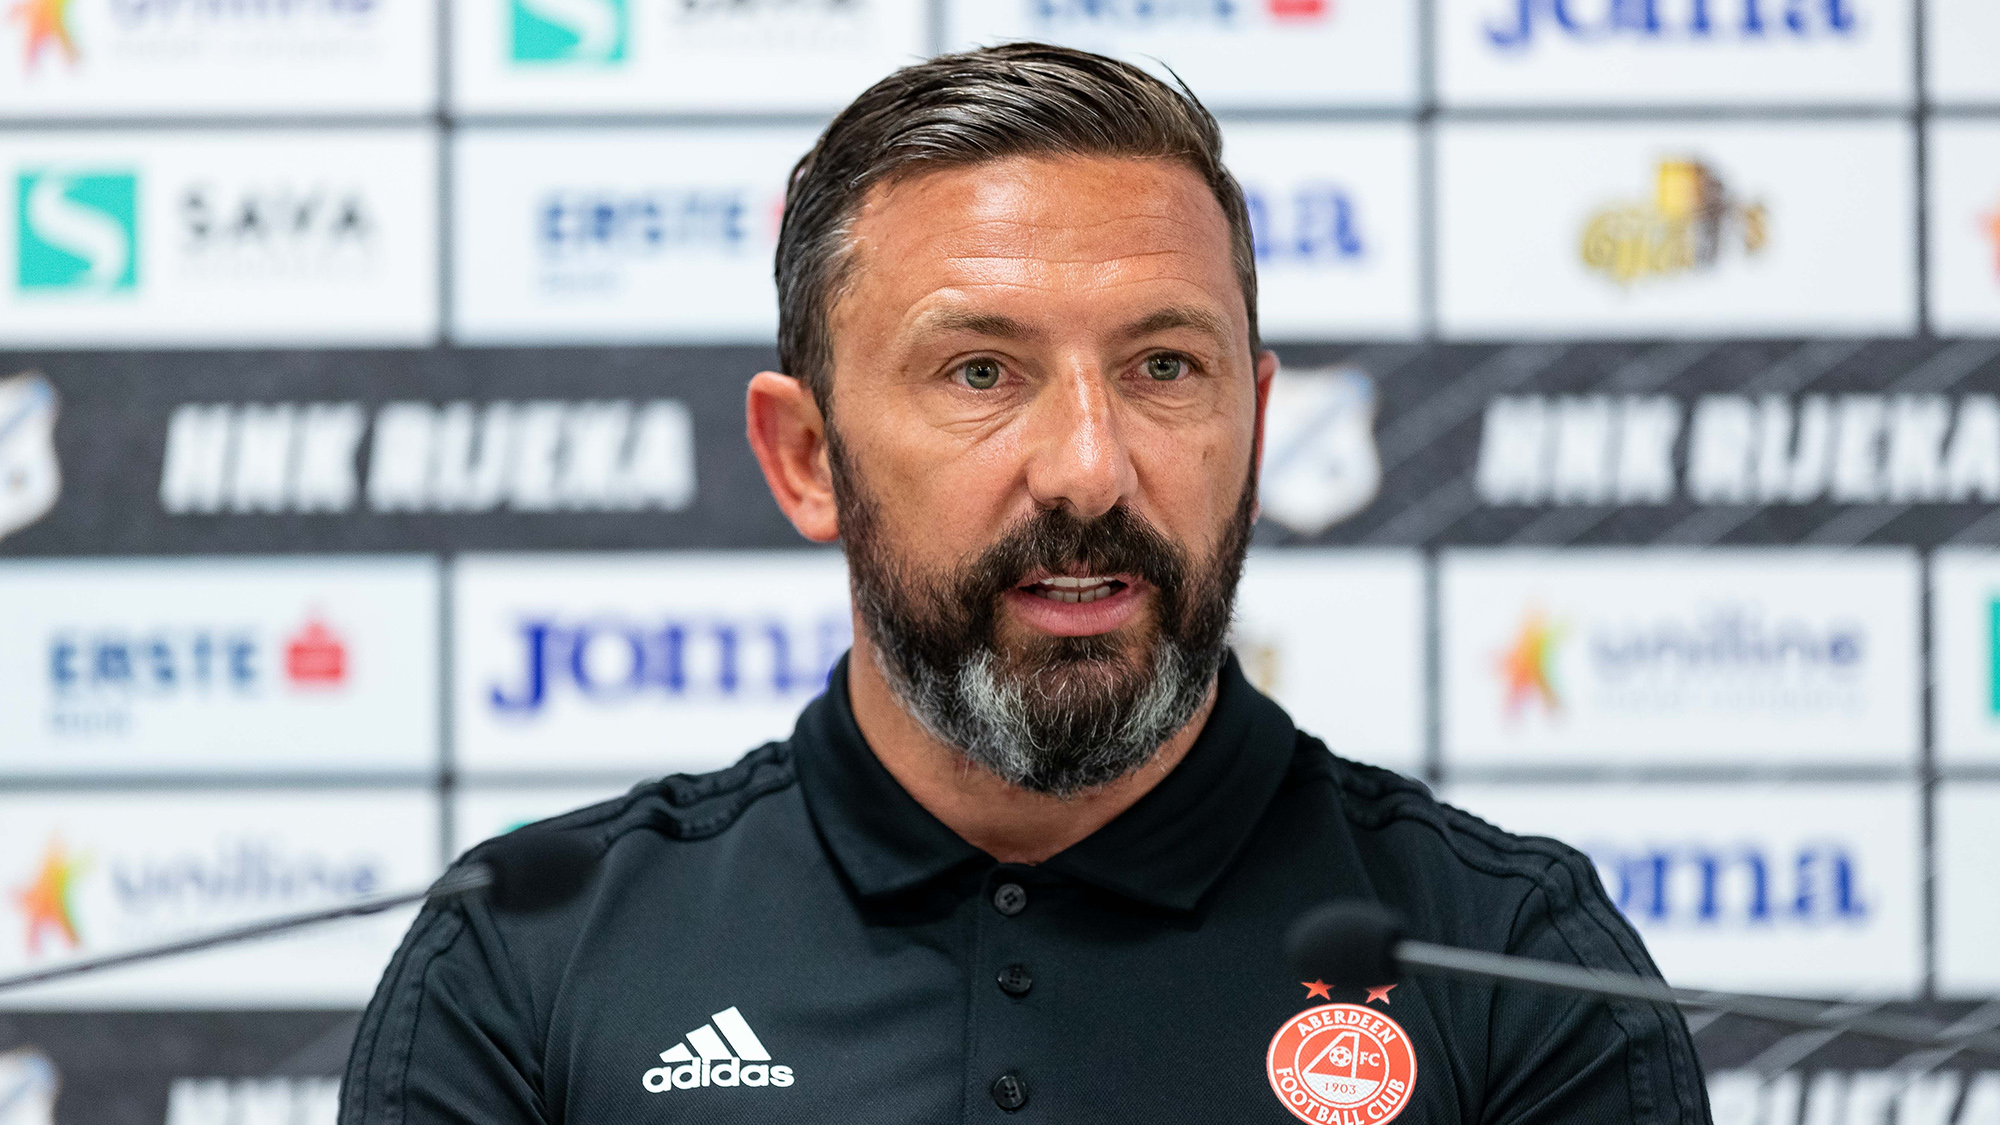 Dons in Croatia | Manager's Pre Match Conference